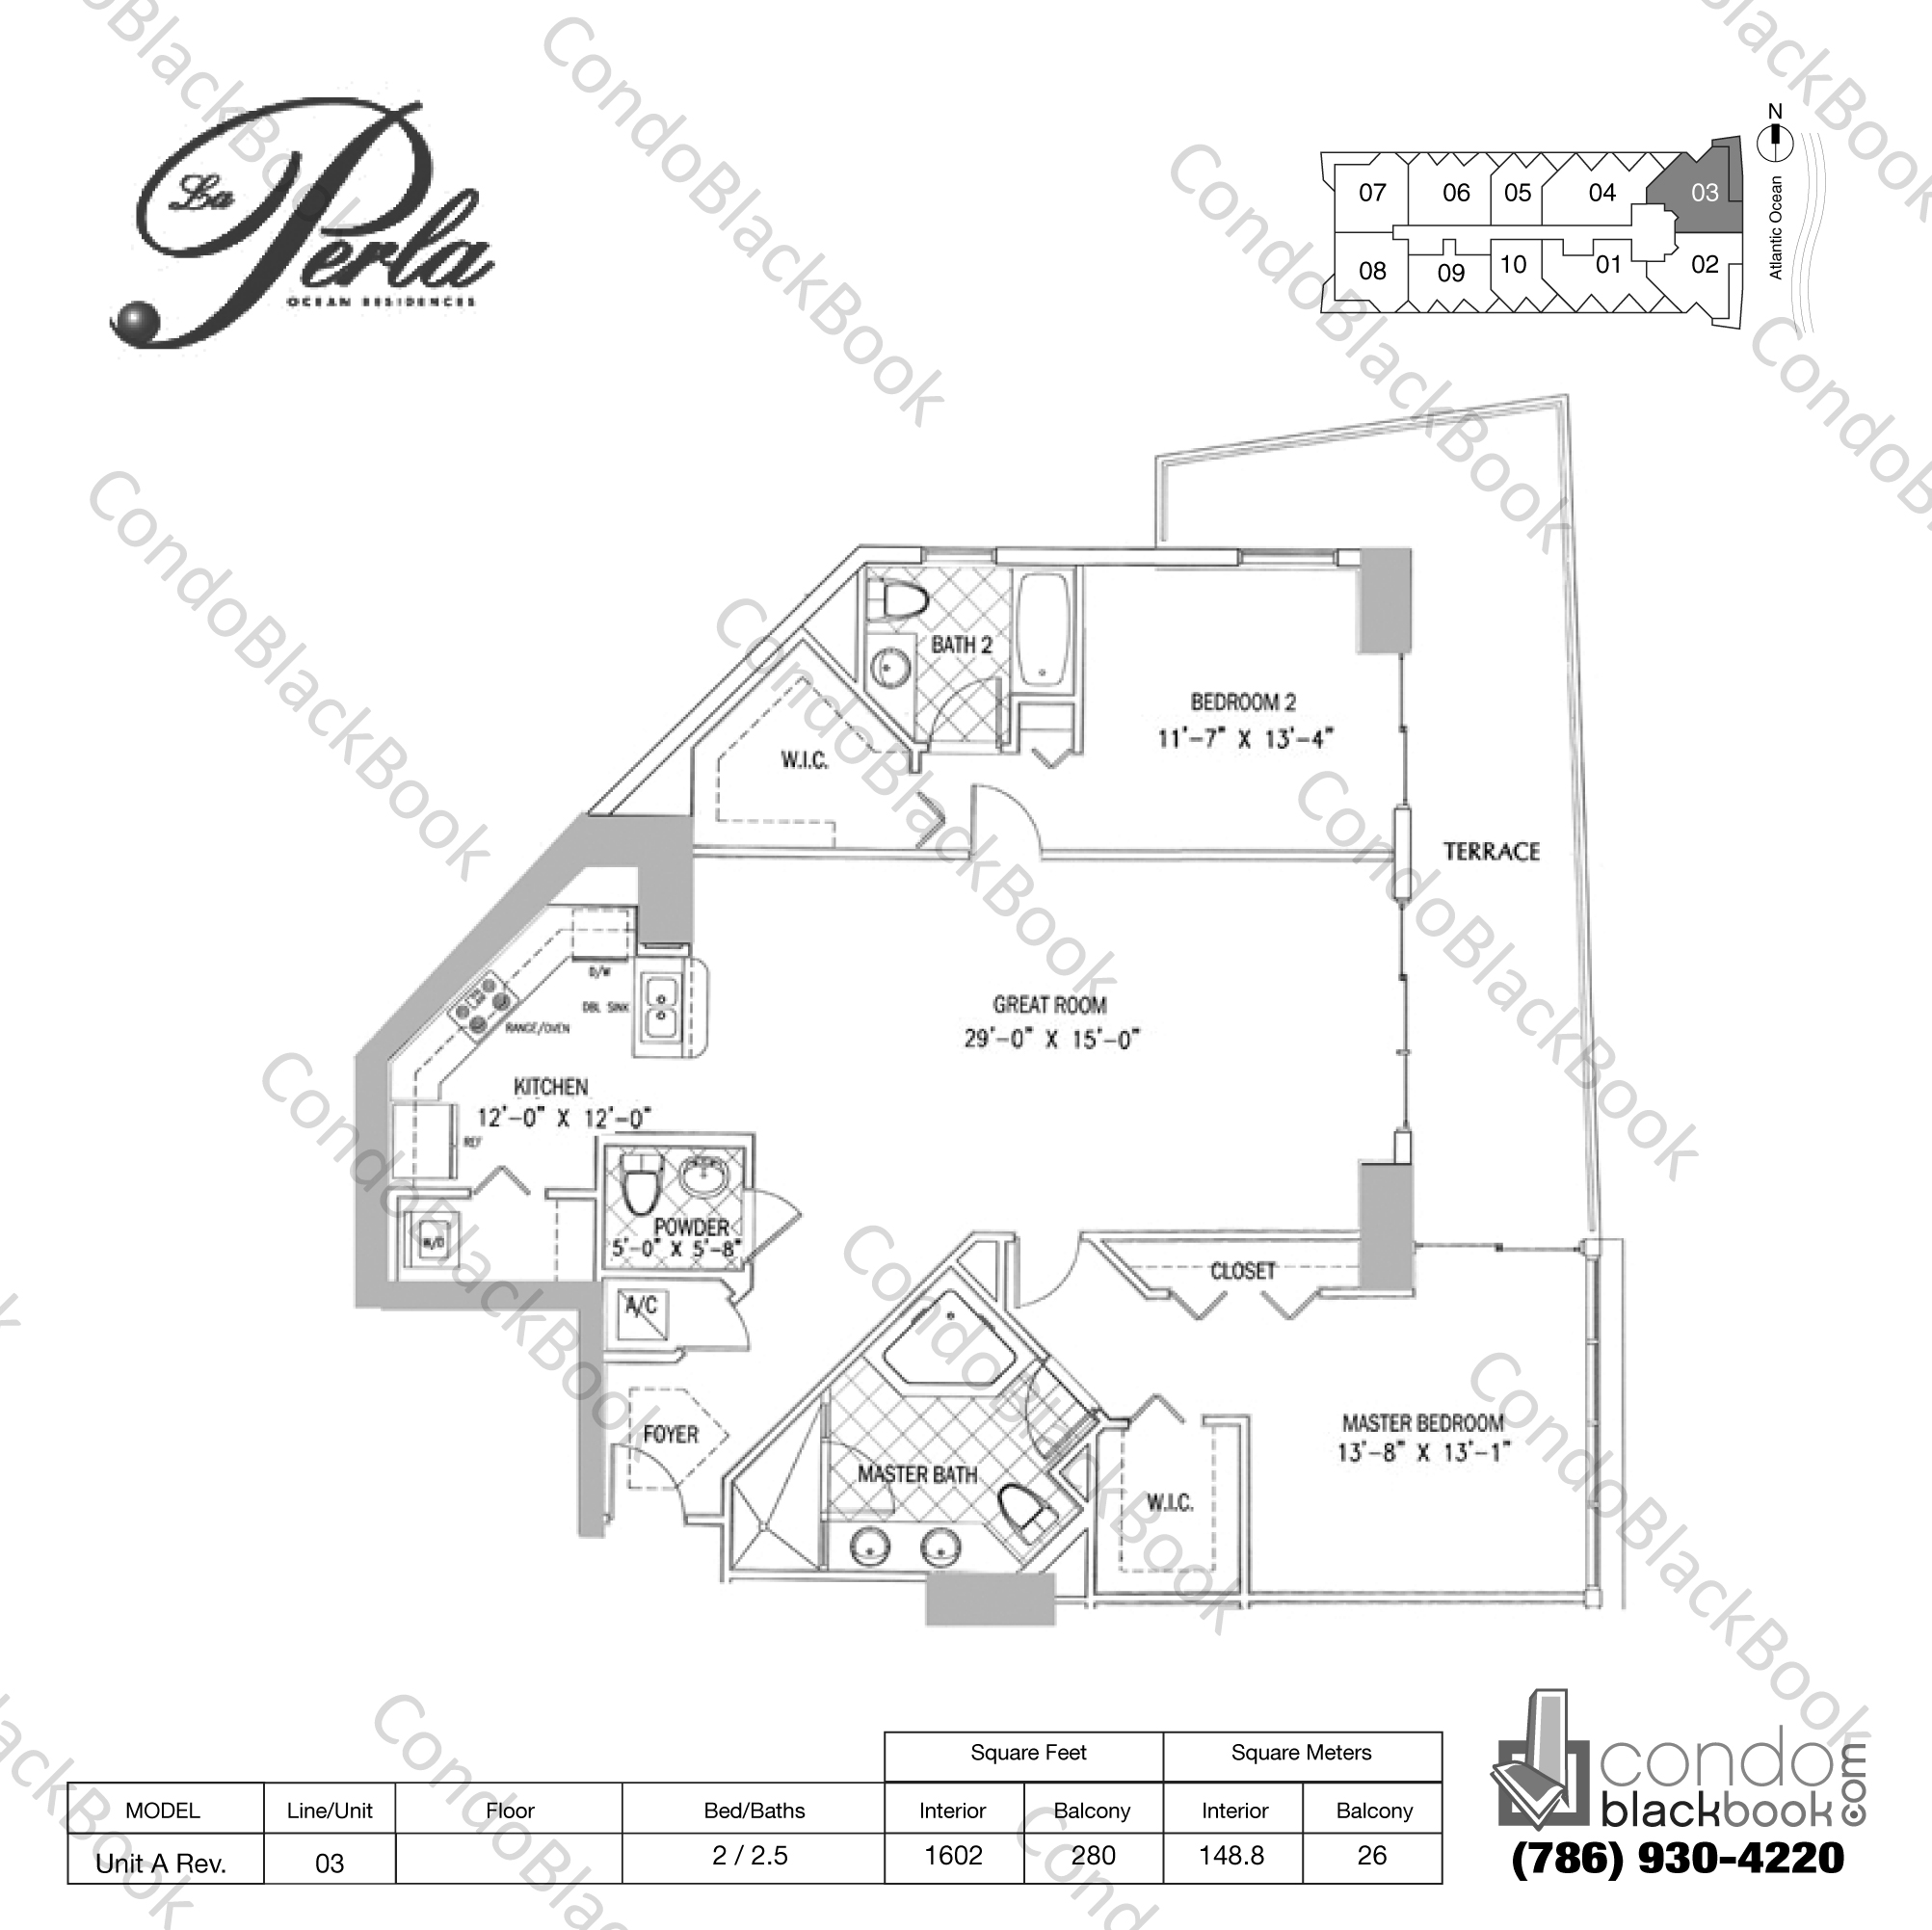 Floor plan for La Perla Sunny Isles Beach, model Unit A Rev., line 03, 2 / 2.5 bedrooms, 1602 sq ft